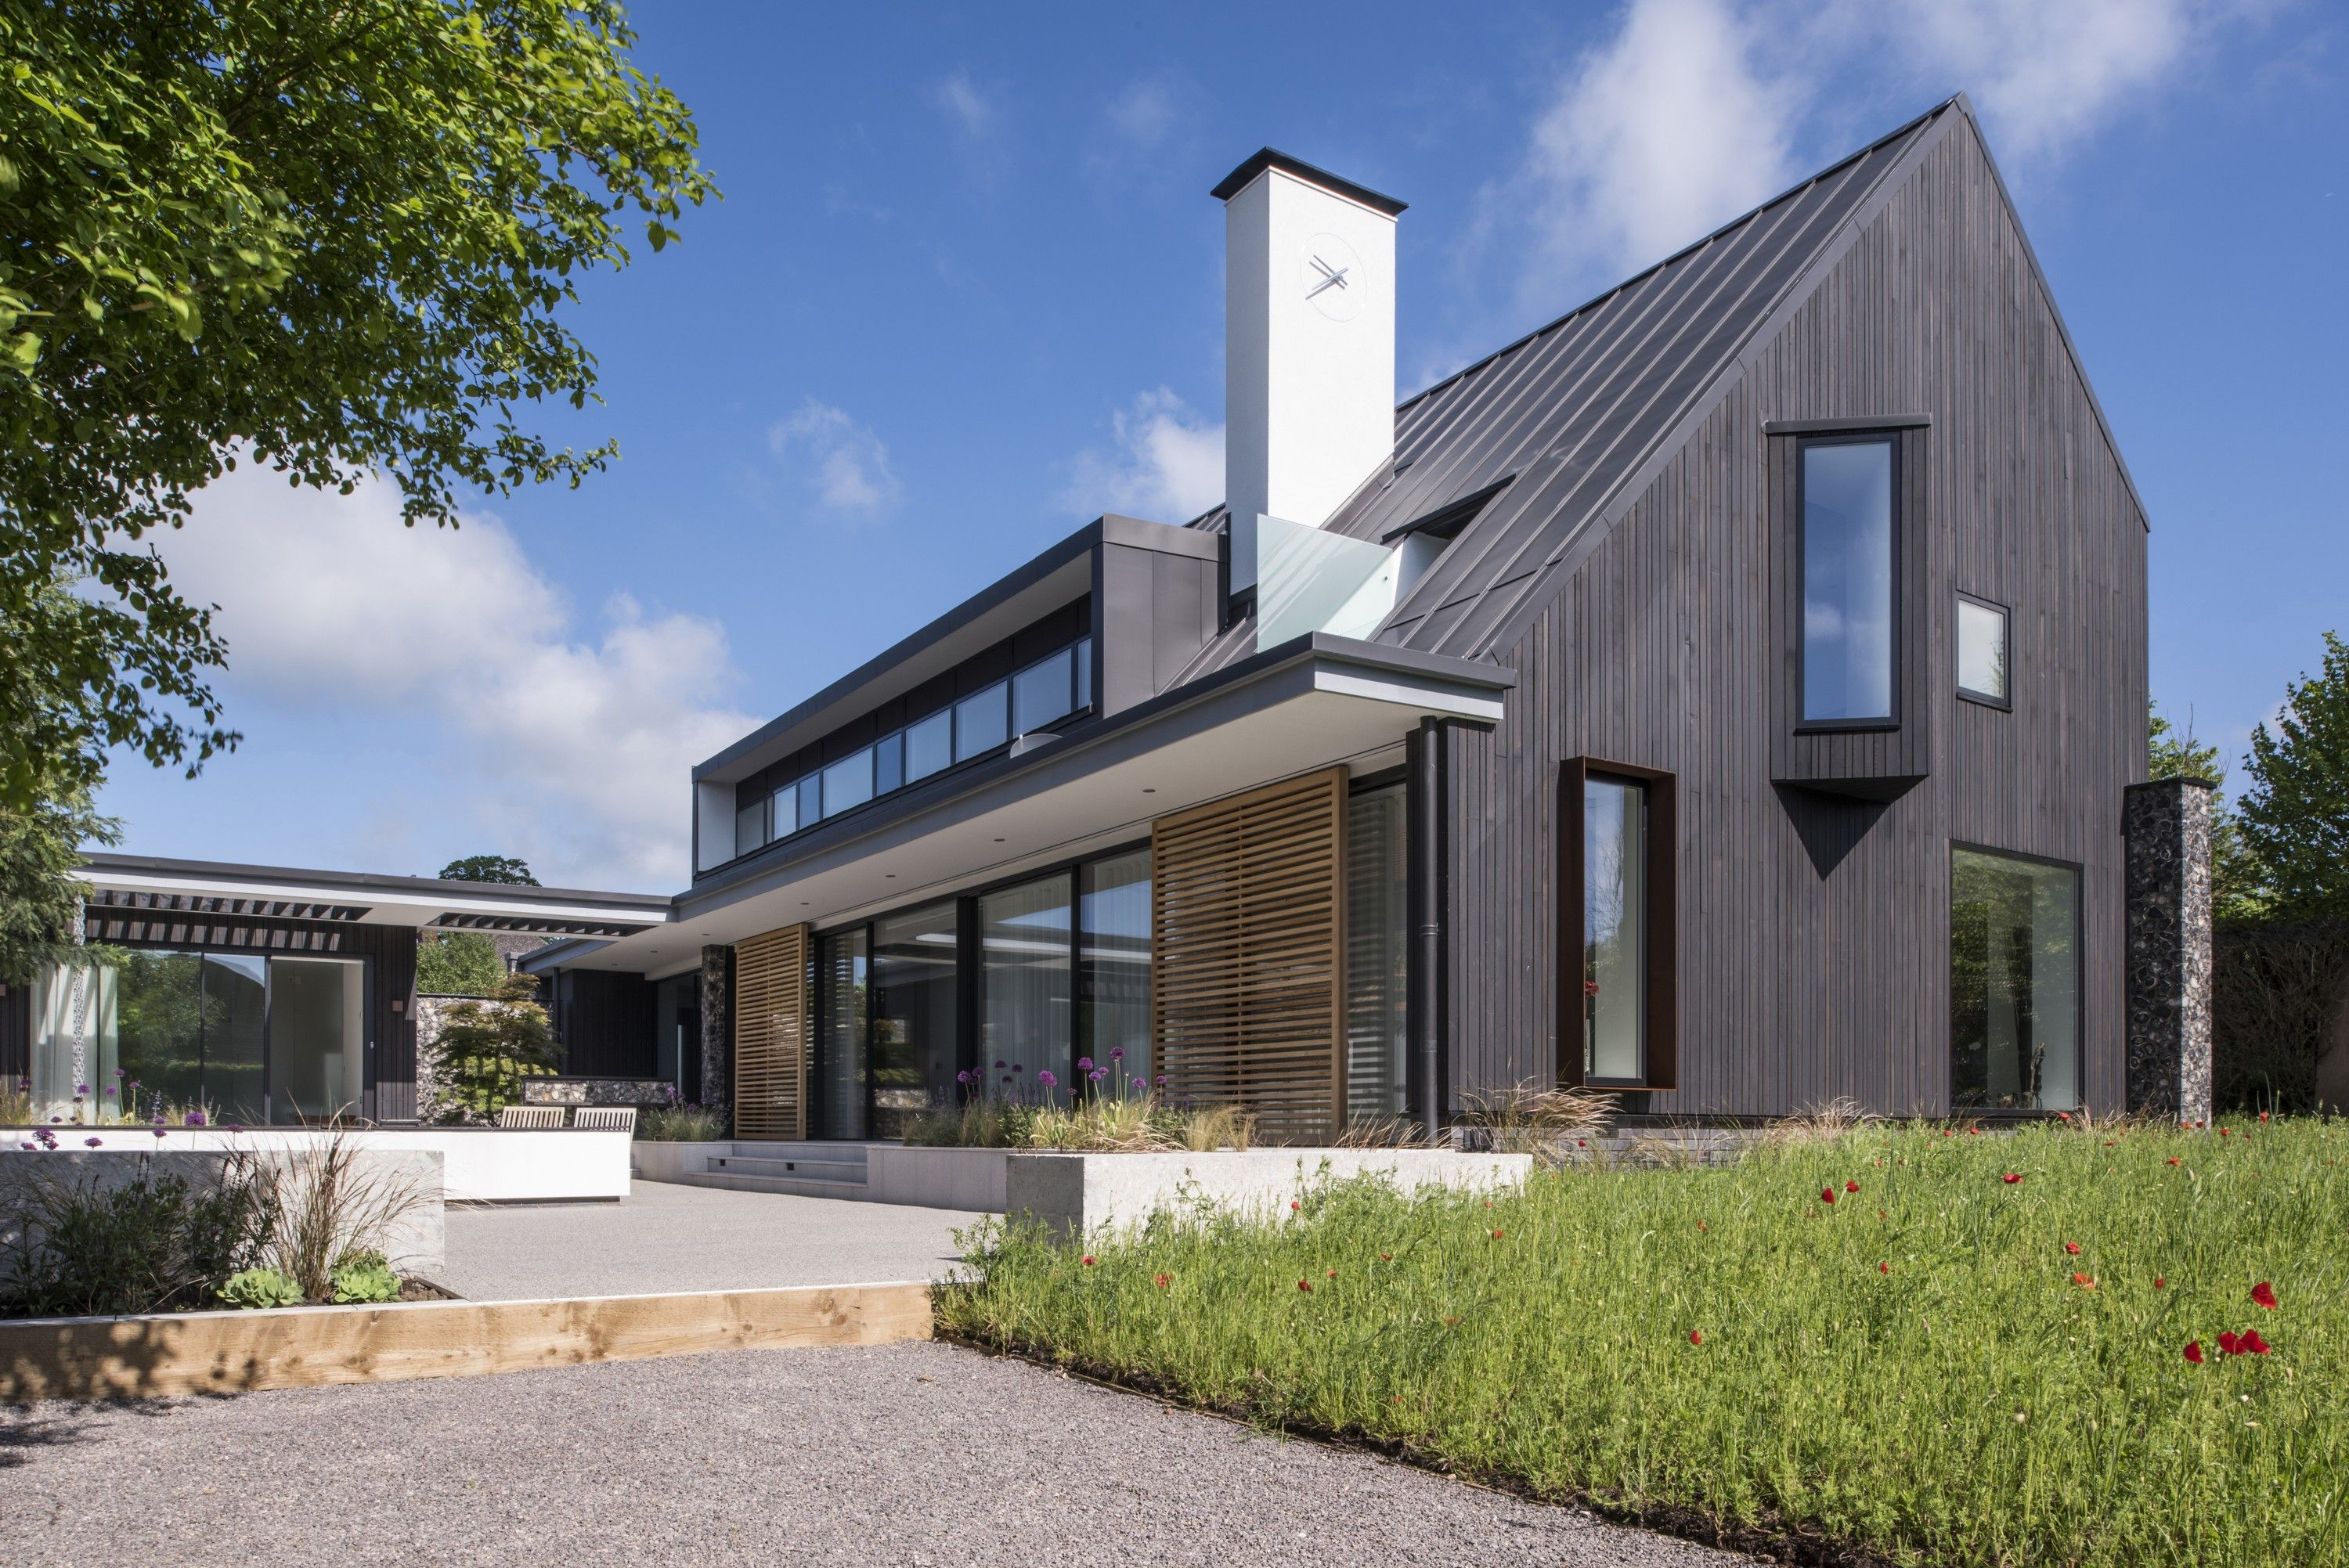 House is an exemplar of sustainable contemporary design in the